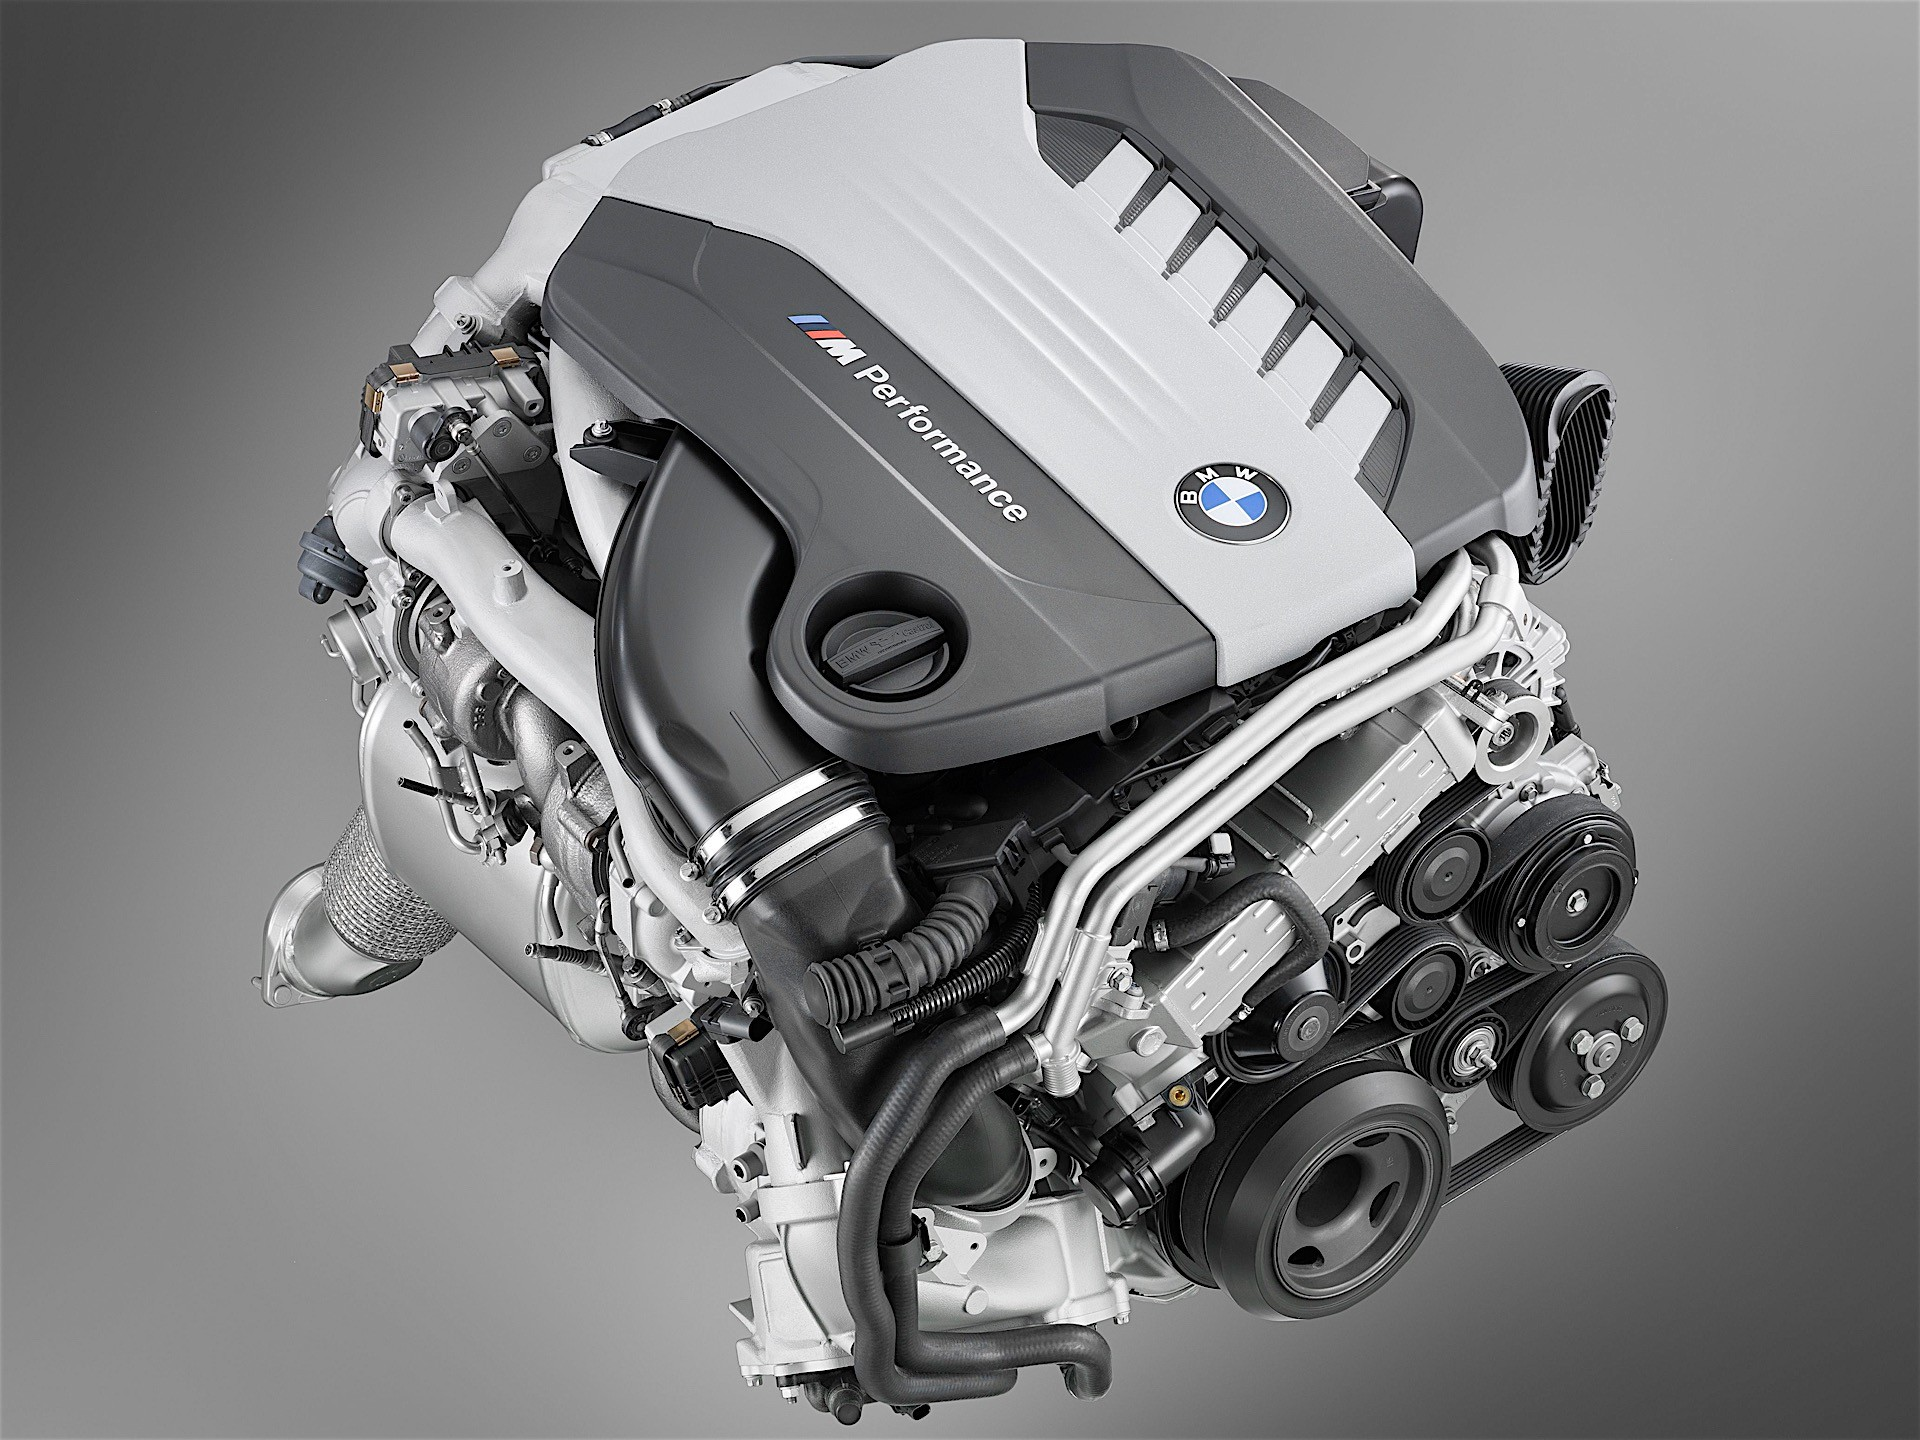 BMW Receives Approval From EPA To Sell 2017 Diesel Models In The